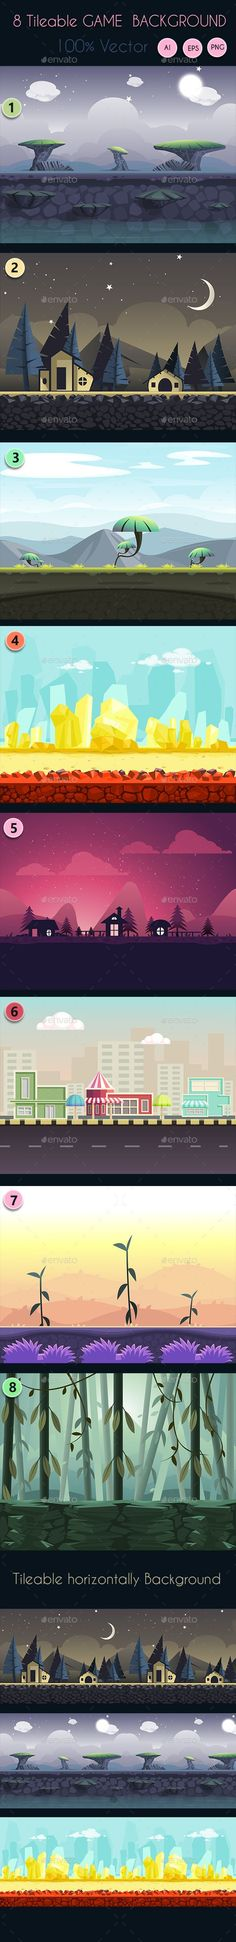 8 Tileable Vector Game Background: